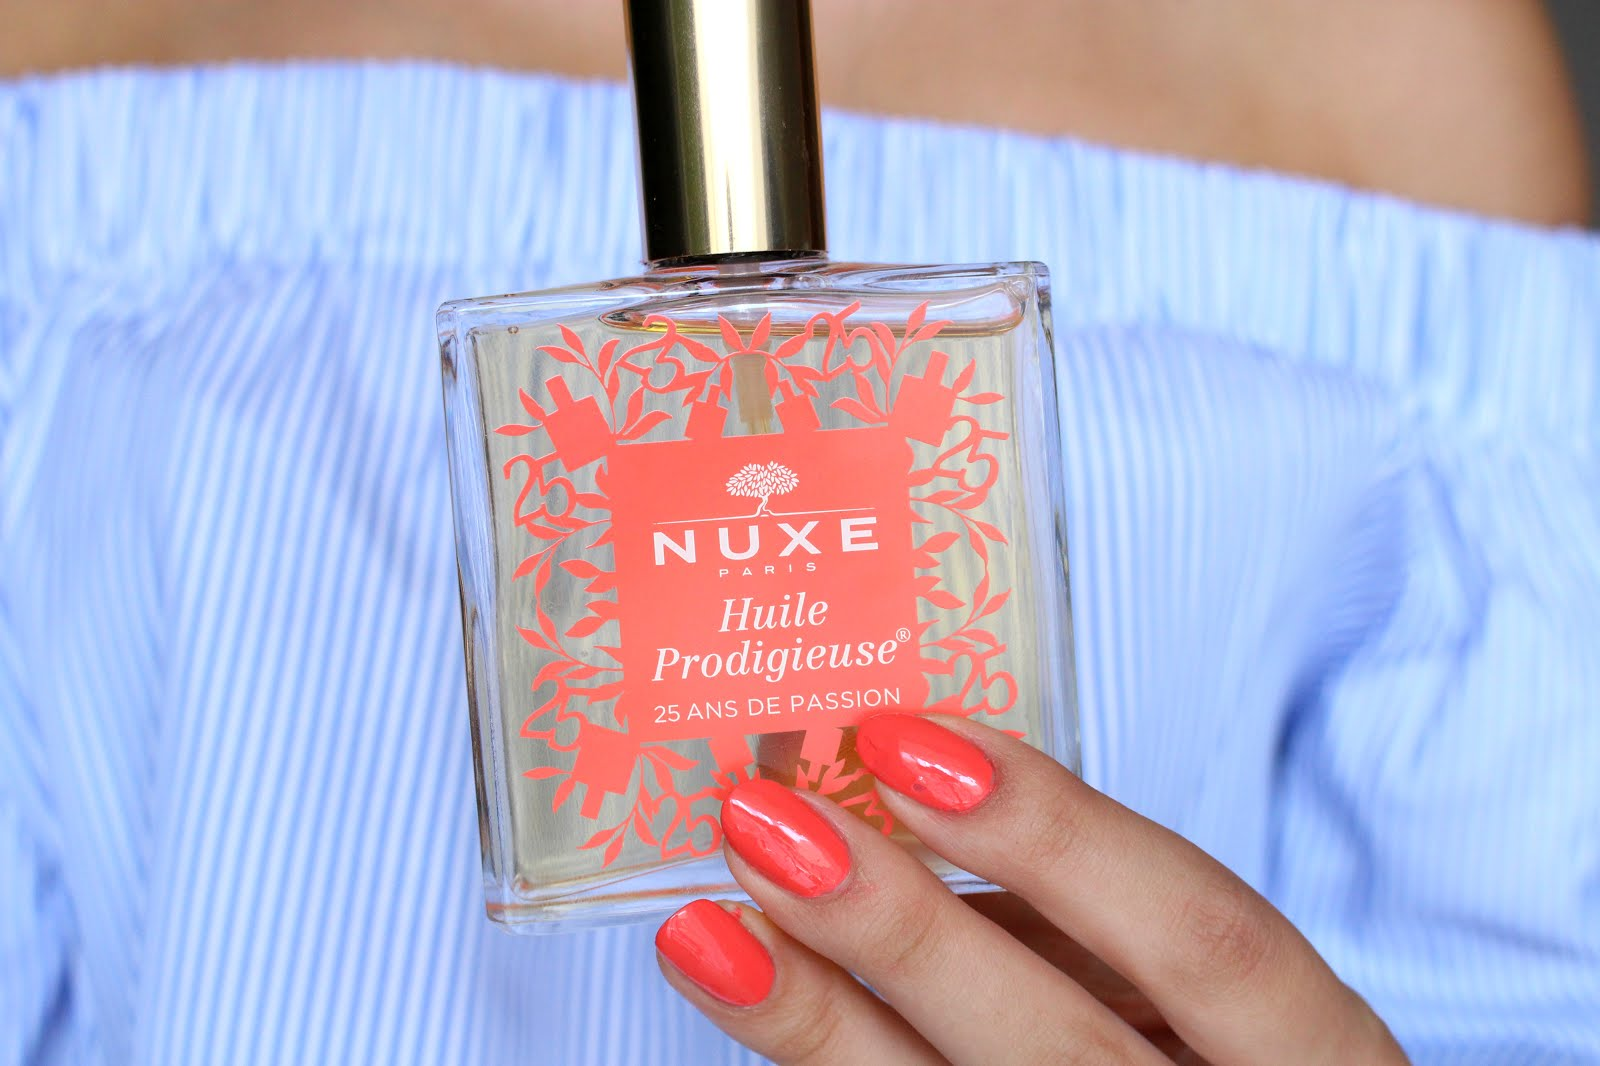 nuxe, nuxe öl, nuxe trockenöl, nuxe oil, nuxe dry oil, nuxe huile prodigieuse, nuxe huile prodigieuse öl, nuxe huile prodigieuse trockenöl, nuxe huile prodigieuse oil, nuxe review, nuxe öl review, nuxe trockenöl review, nuxe oil review, nuxe dry oil review, nuxe huile prodigieuse review, nuxe huile prodigieuse öl review, nuxe huile prodigieuse trockenöl review, nuxe huile prodigieuse oil review, nelly ray, nelly ray blog, different is better, beauty blog, blogger, beauty blogger,